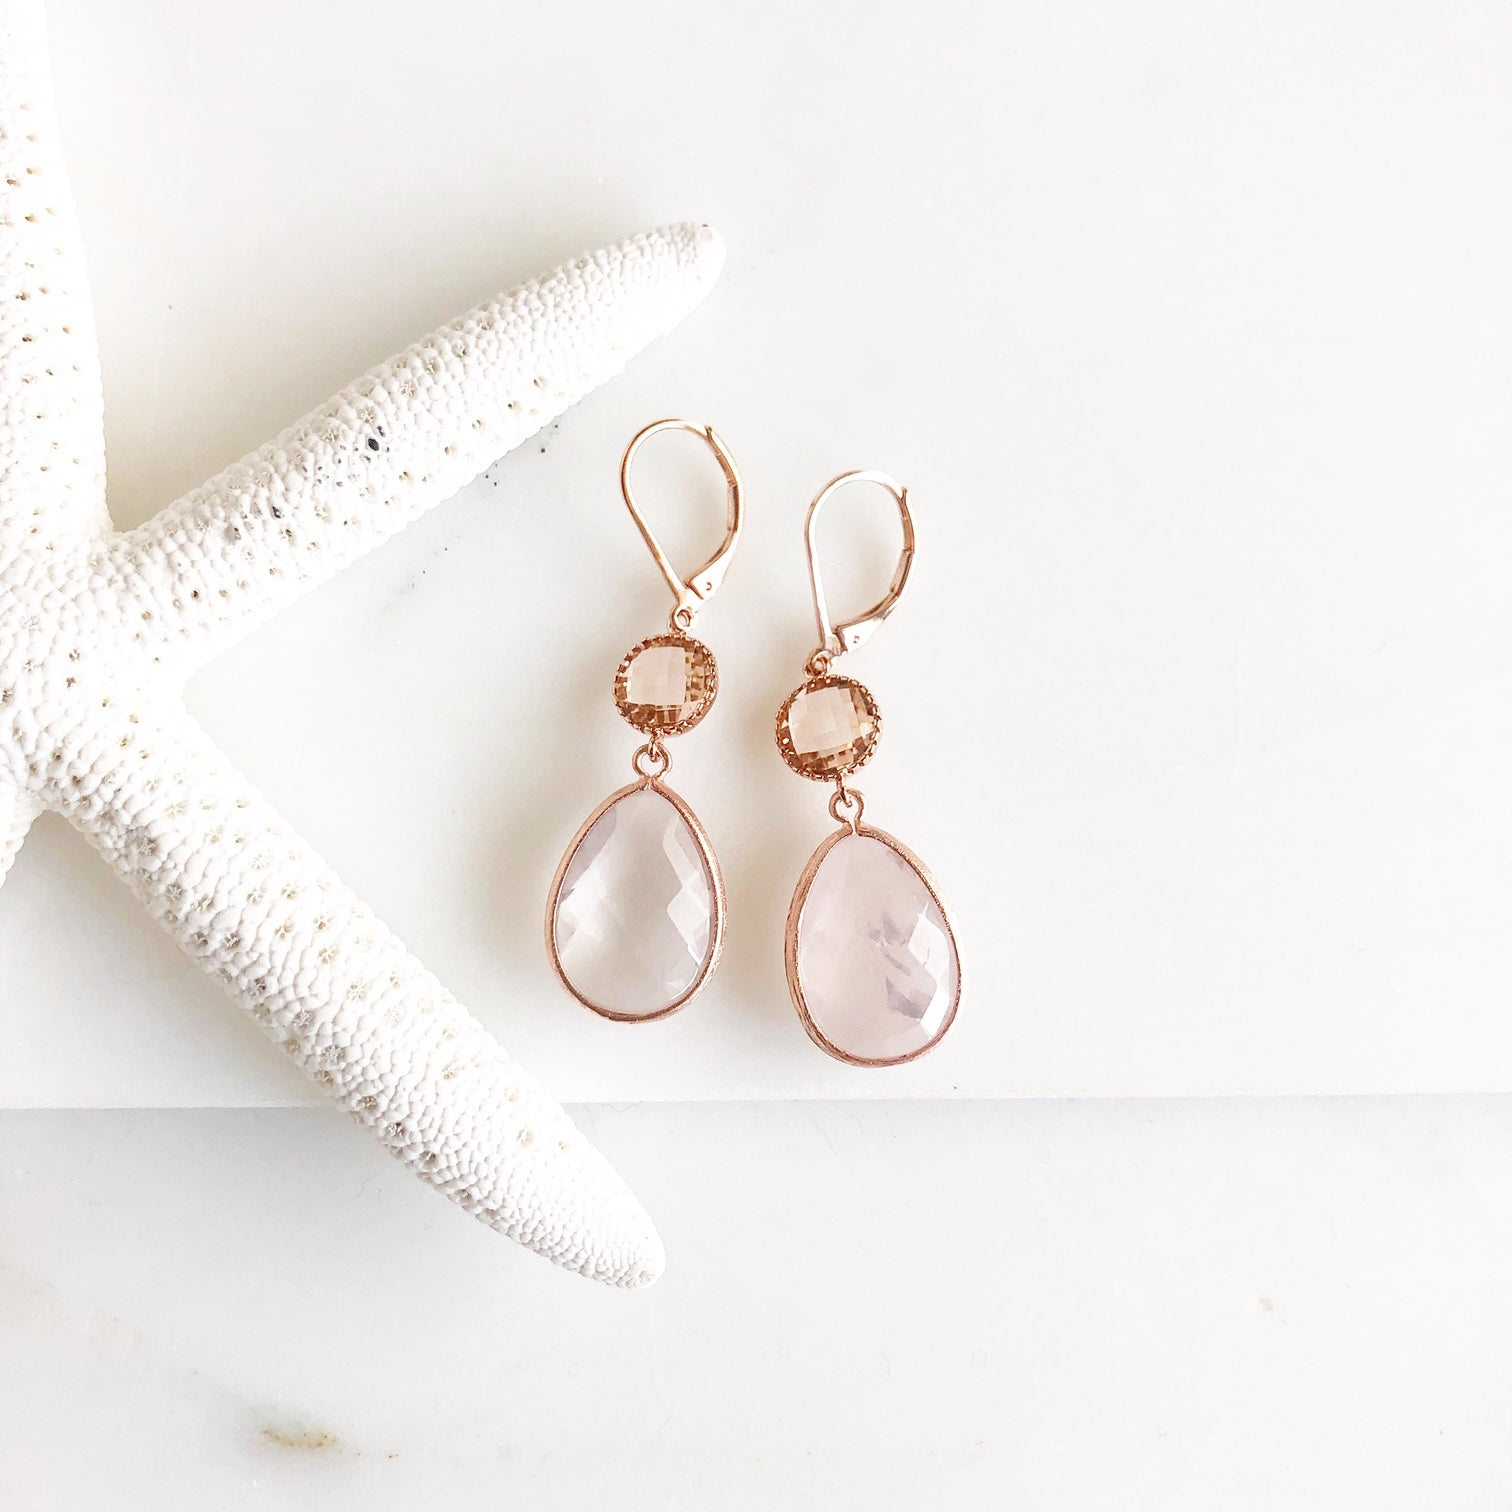 Rose Quartz and Champagne Stone Drop Earrings in Rose Gold.